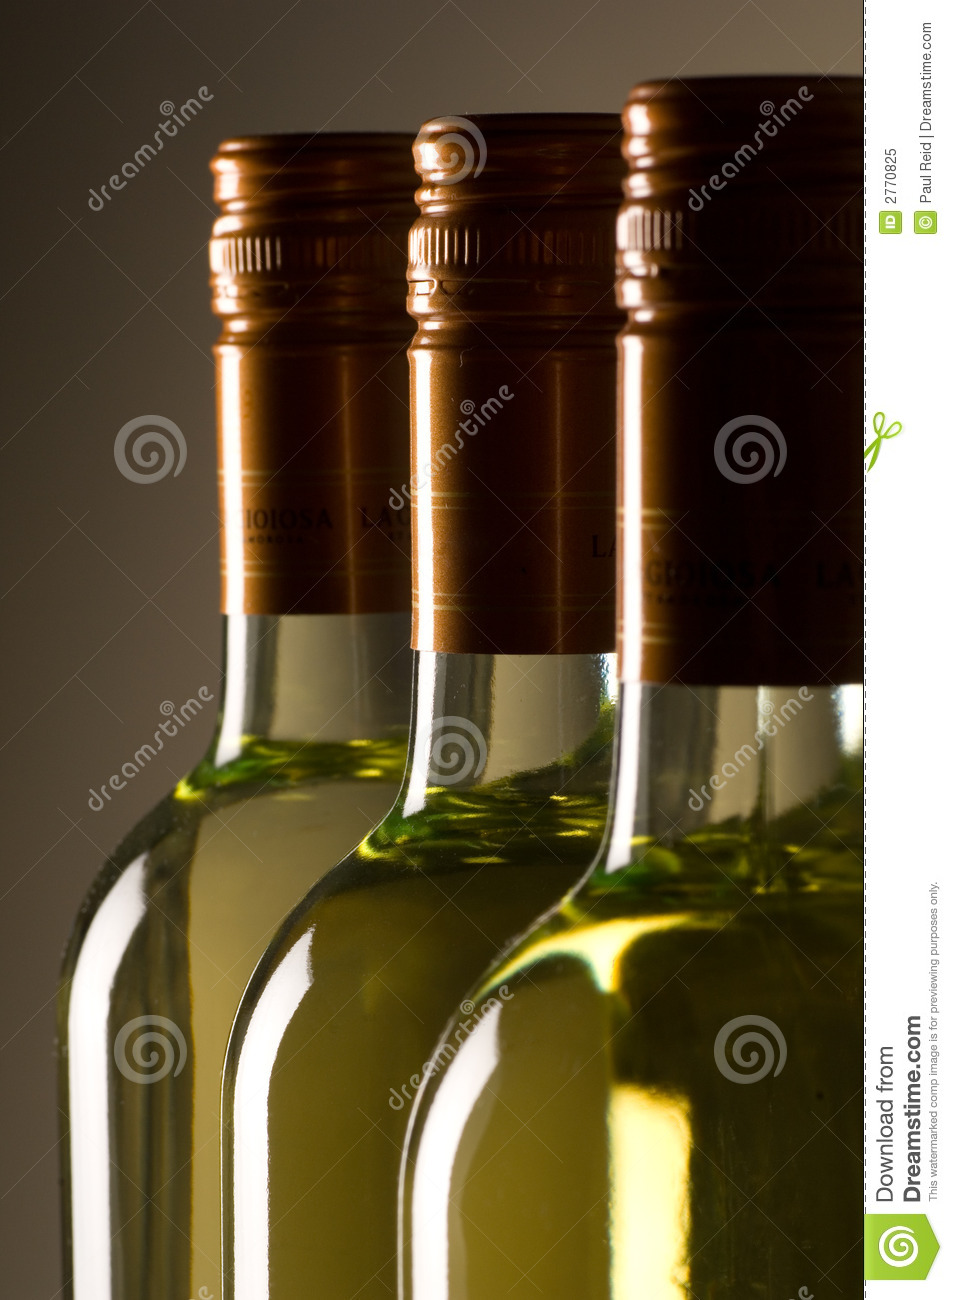 Bottles of white wine